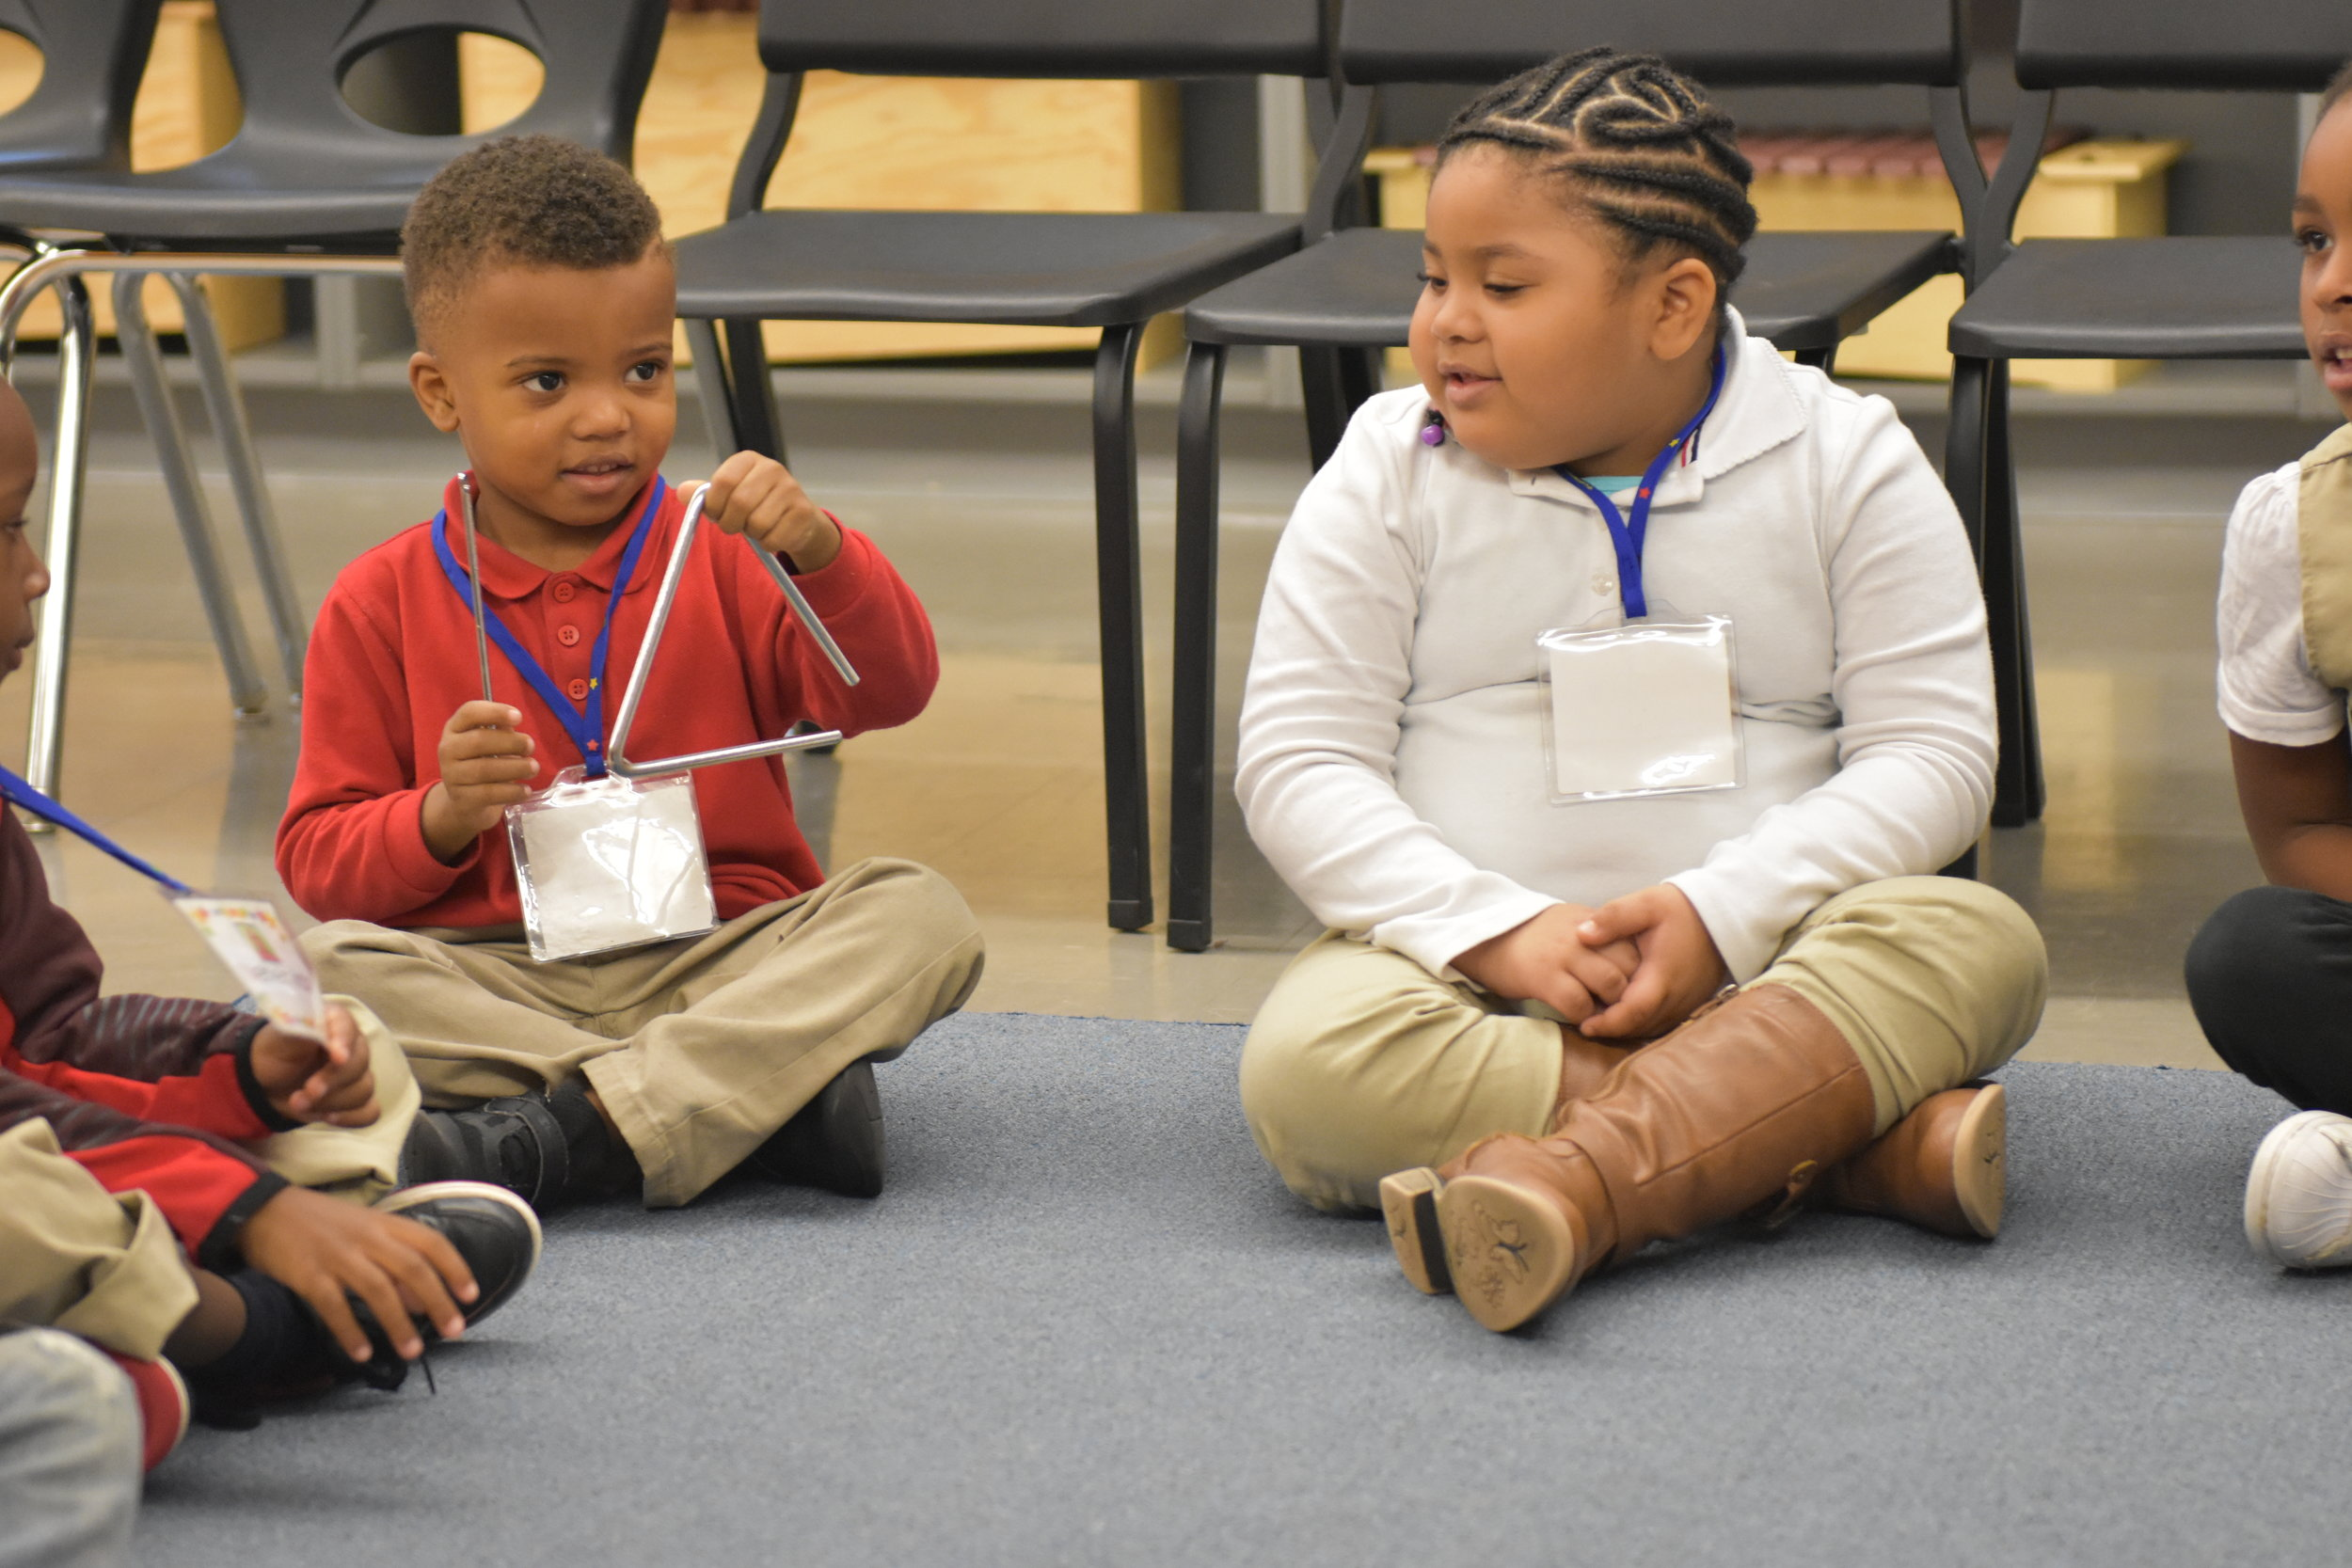 Cornerstones lessons required in nearly every course Kindergarten - 12. - An overarching vision of teaching and learning can be replicated and customized to every content area. Students experience Cornerstones at every grade, and in every school.